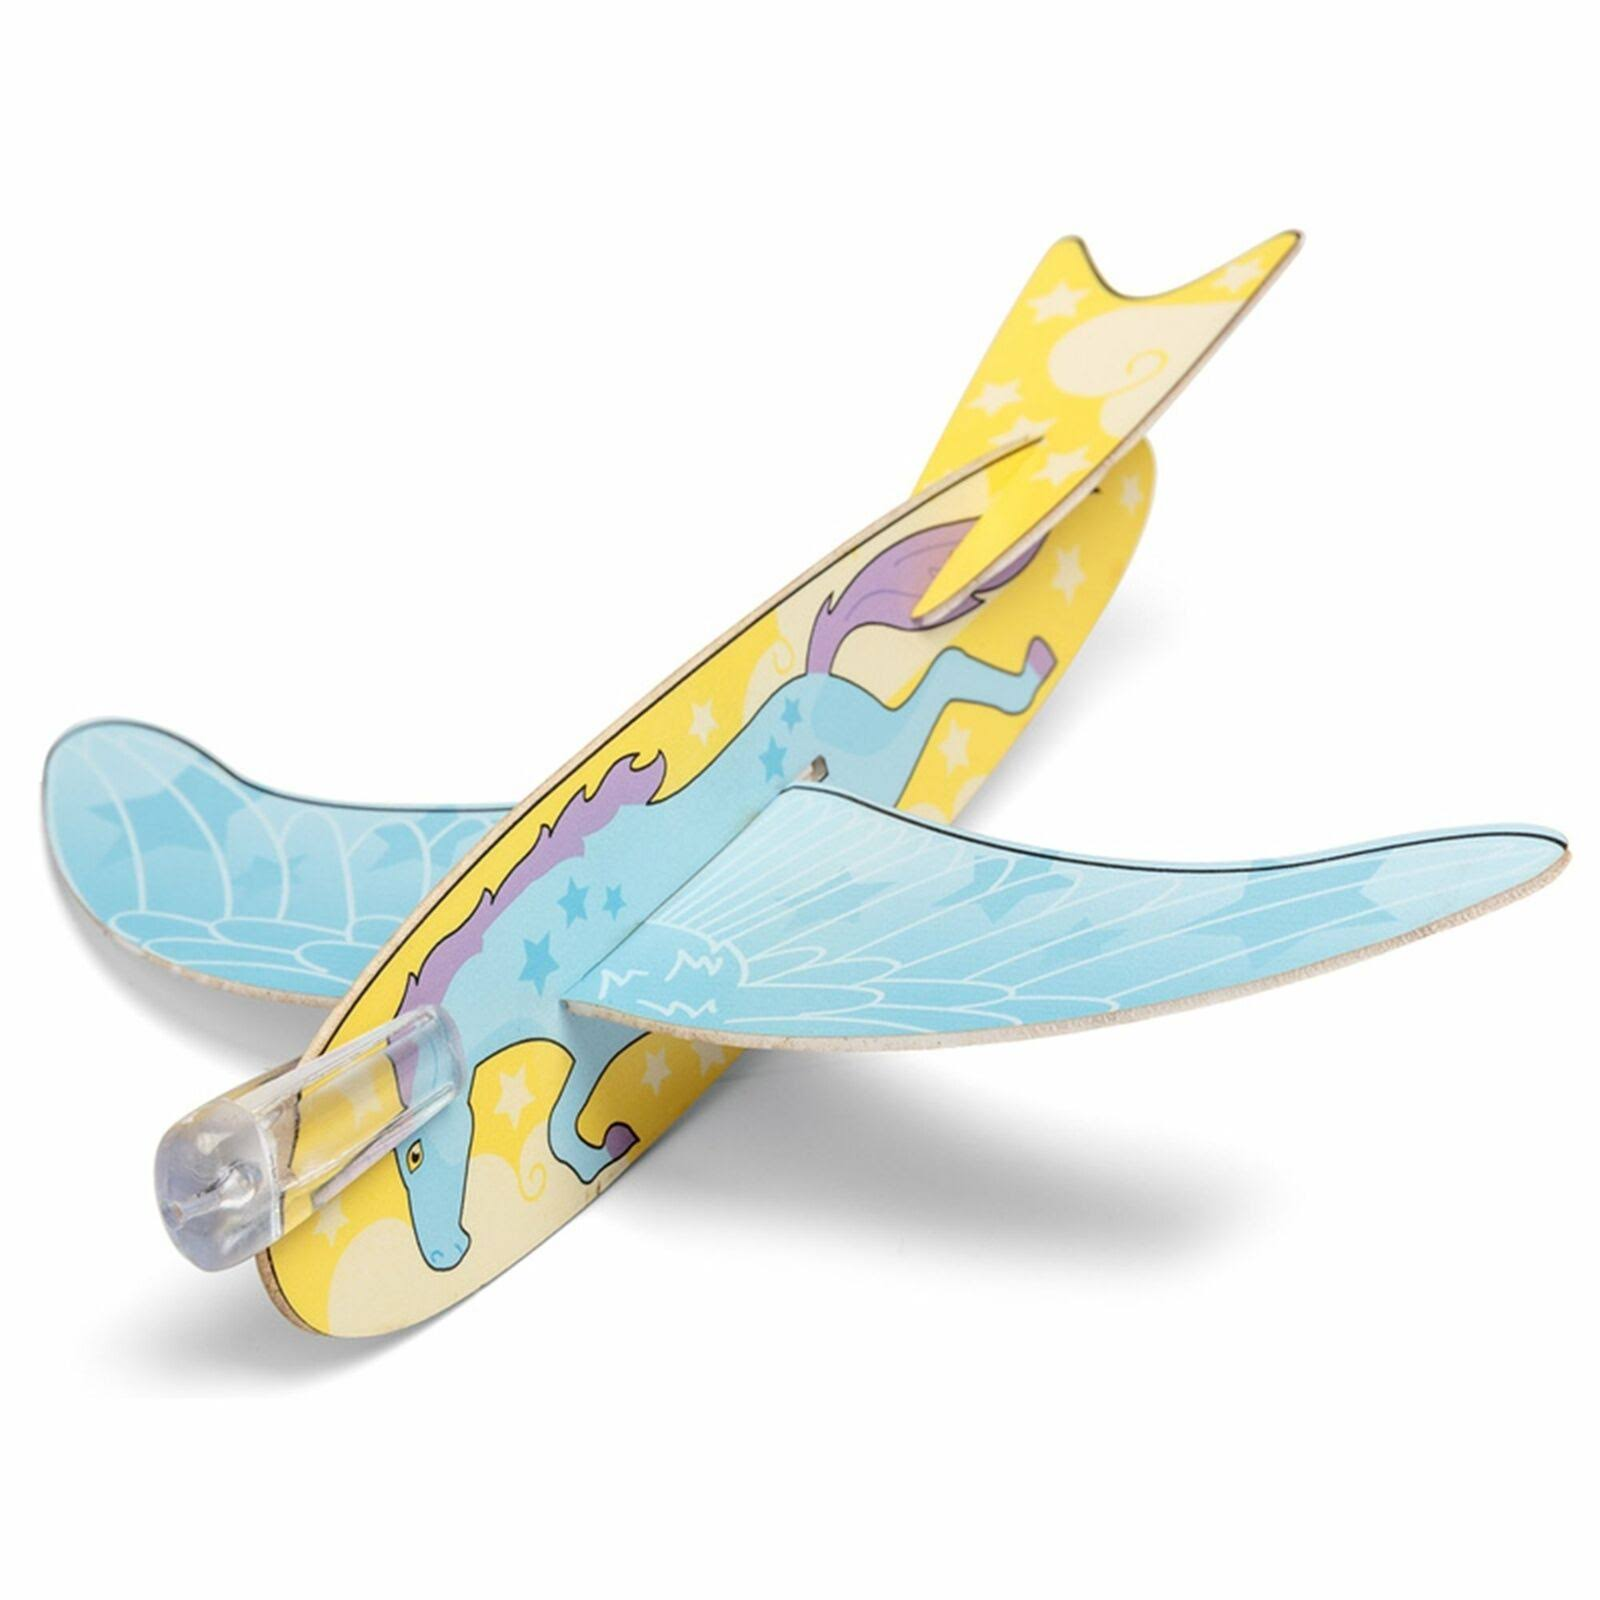 Unicorn Easy To Make and Fun to Fly Glider Toys - 4pk